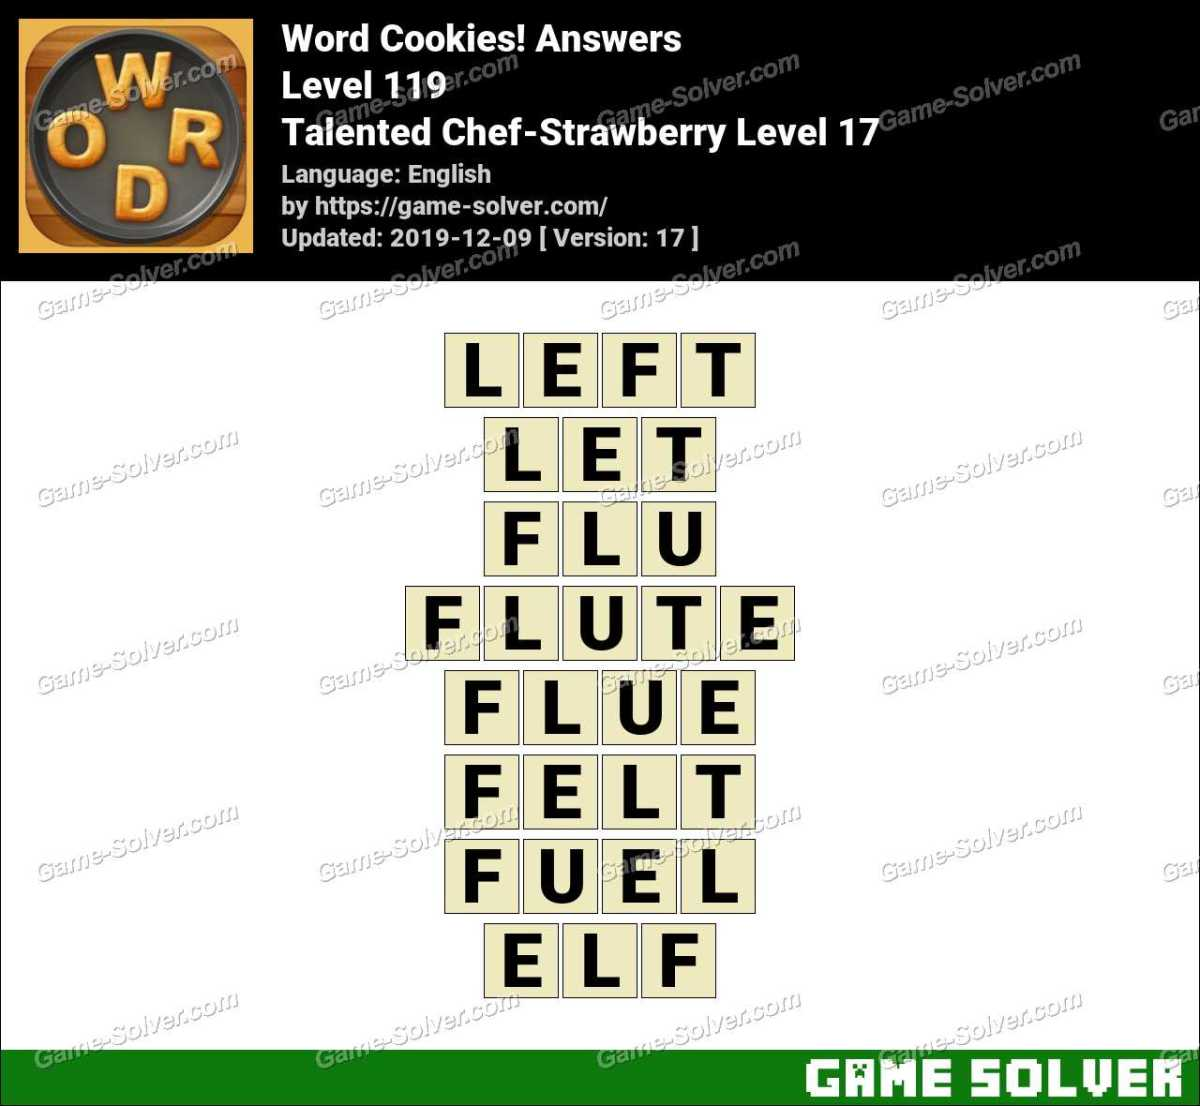 Word Cookies Talented Chef-Strawberry Level 17 Answers